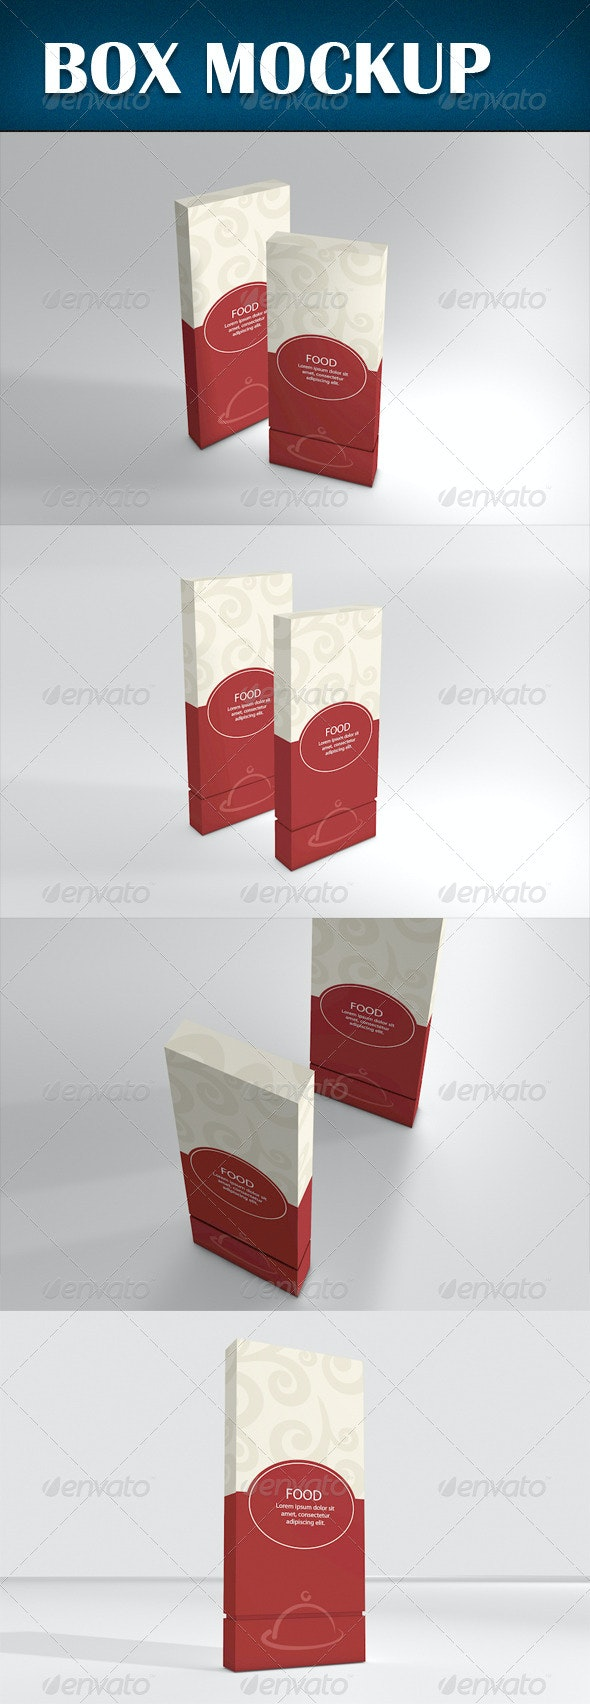 Box Mockup - Product Mock-Ups Graphics